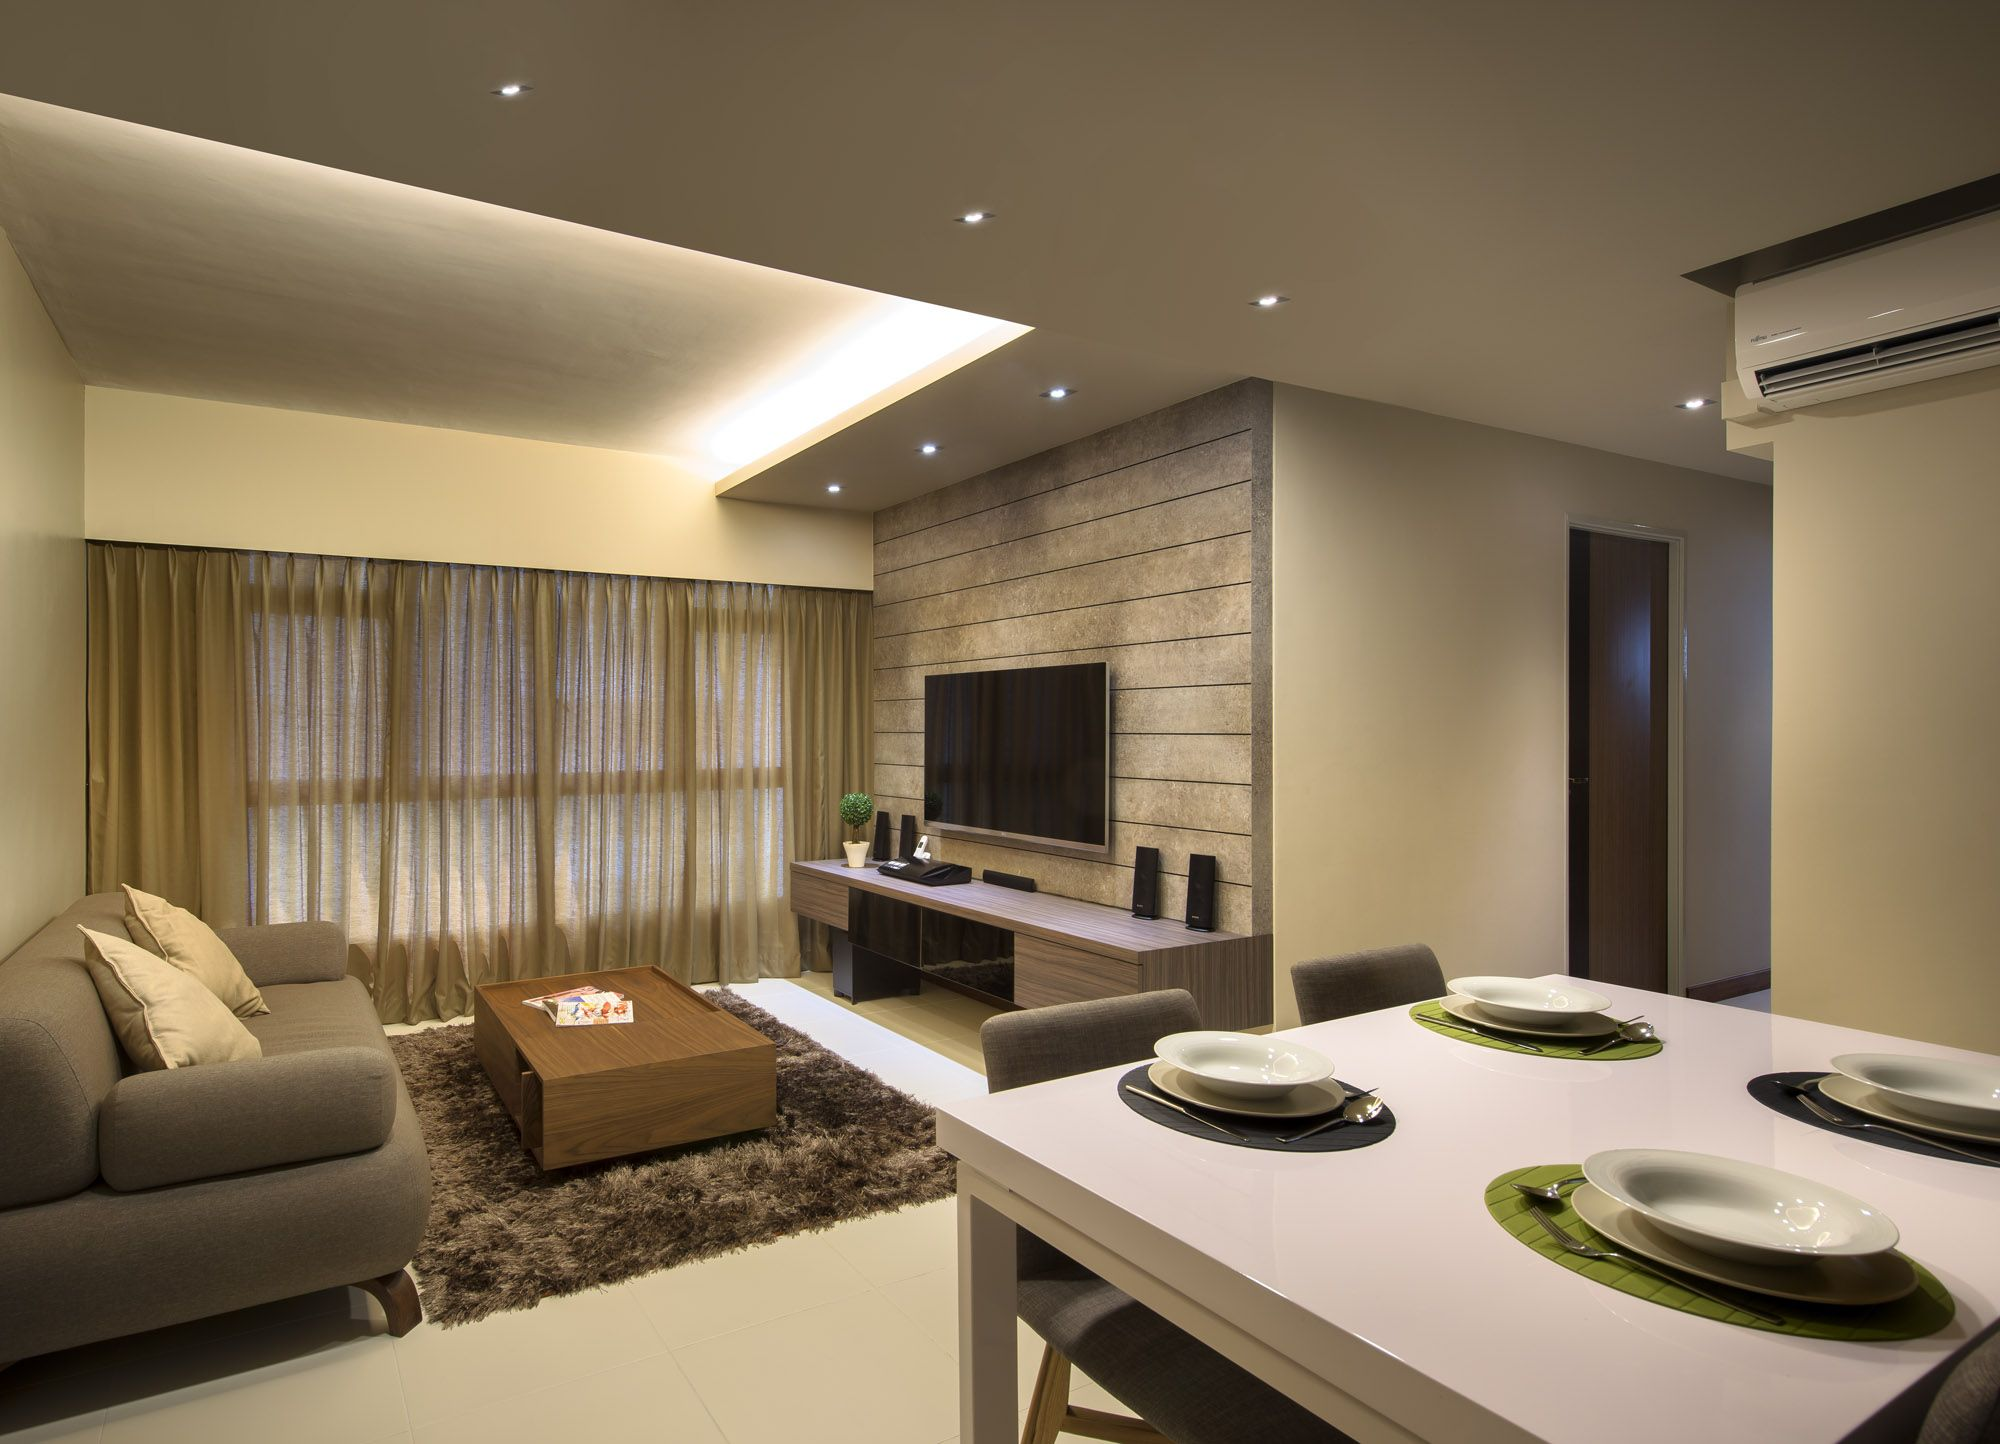 Rezt relax interior design and renovation singapore for Designers room